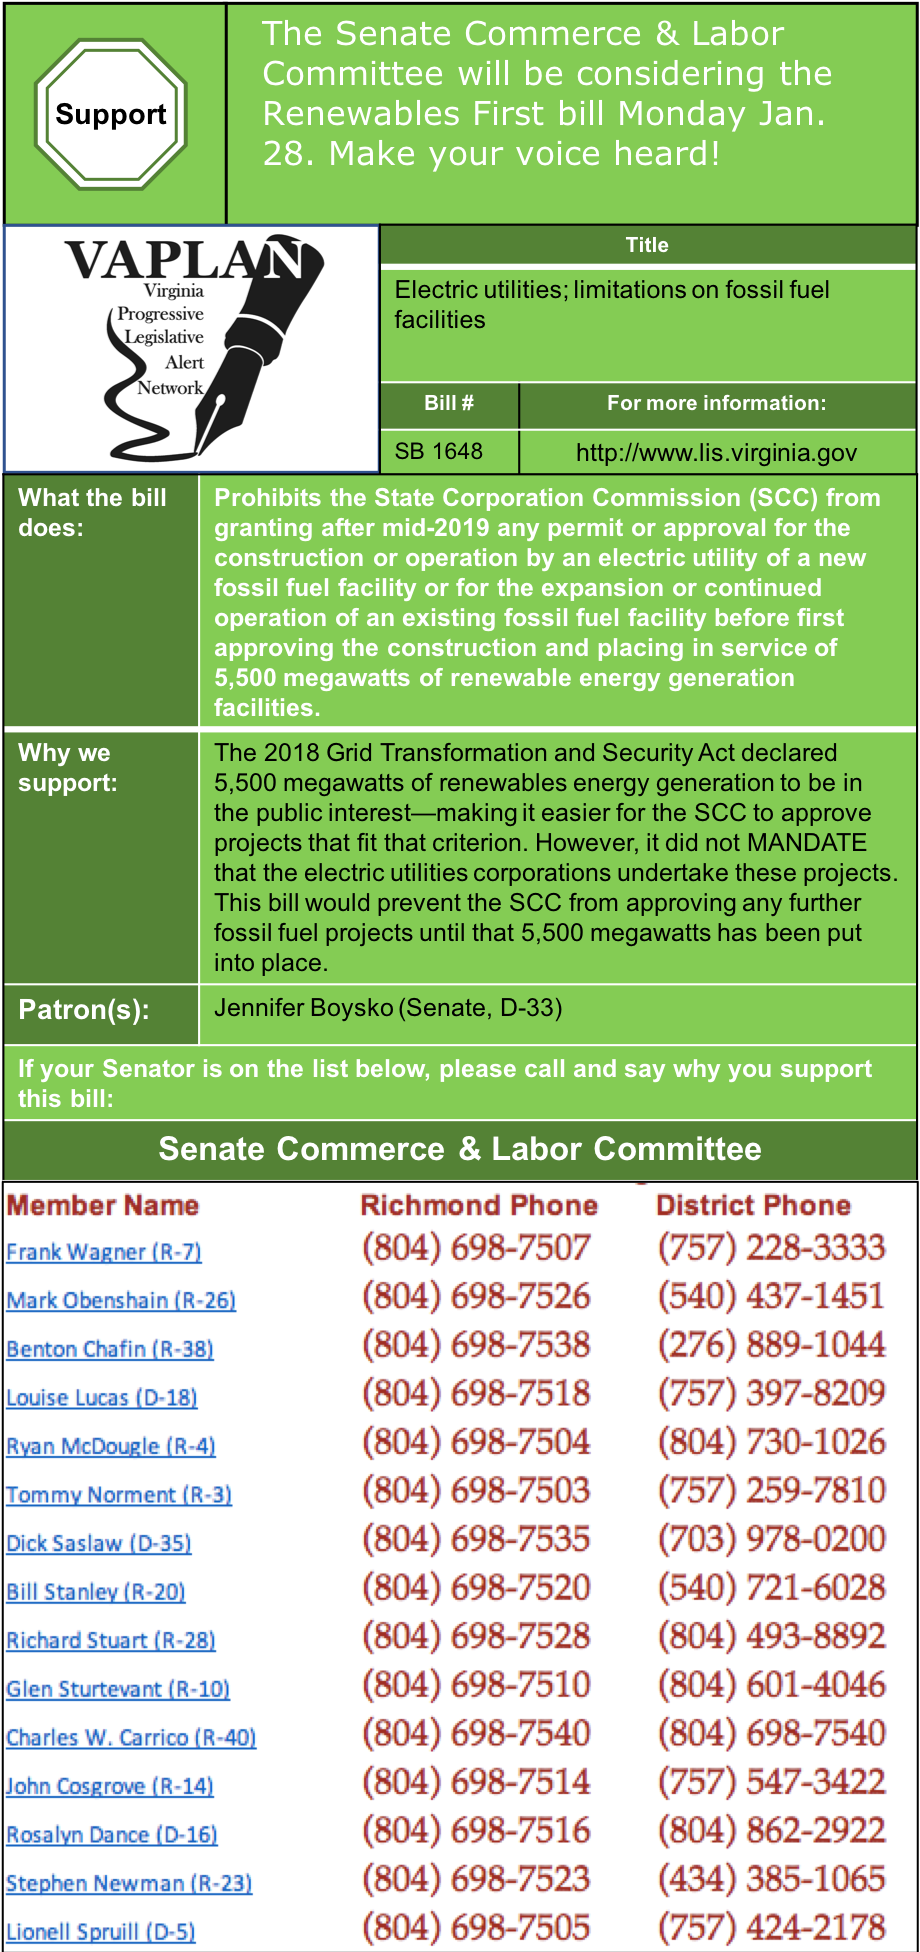 ALERT: Senate Commerce & Labor to consider Renewables First bill on Monday Jan. 28.